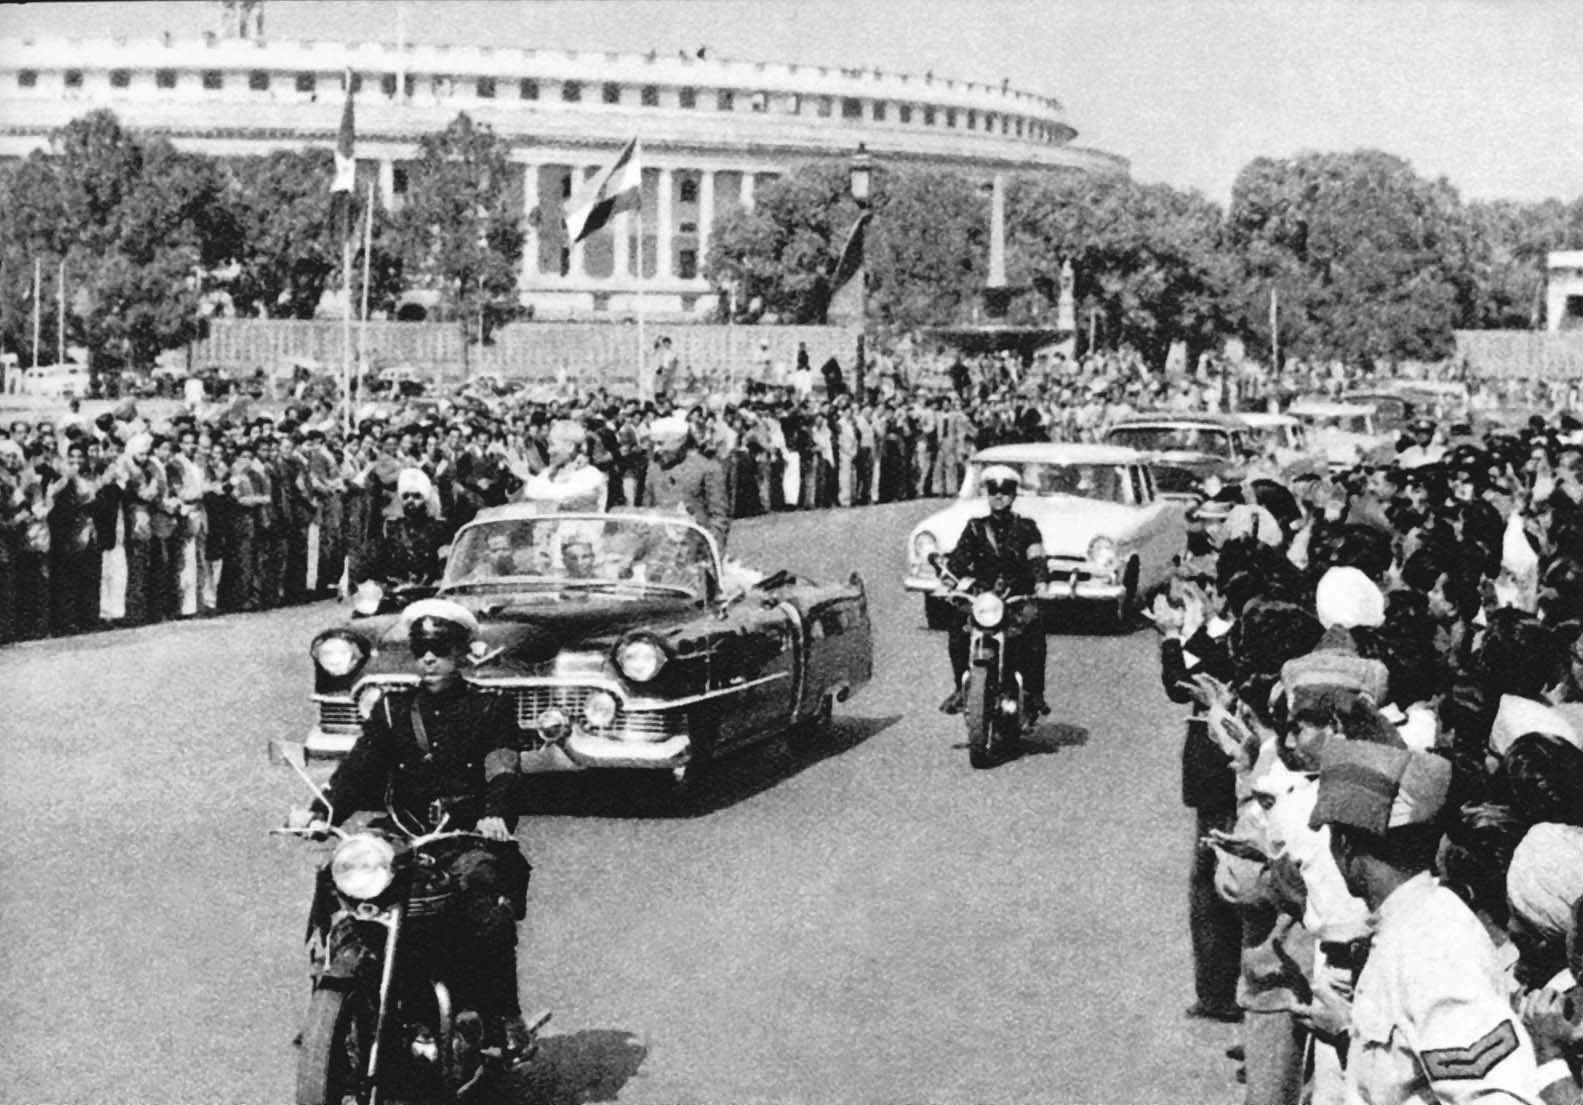 The people of the Capital city Delhi welcomed President Ho Chi Minh during his friendship visit to the Republic of India (February 4th, 1958)